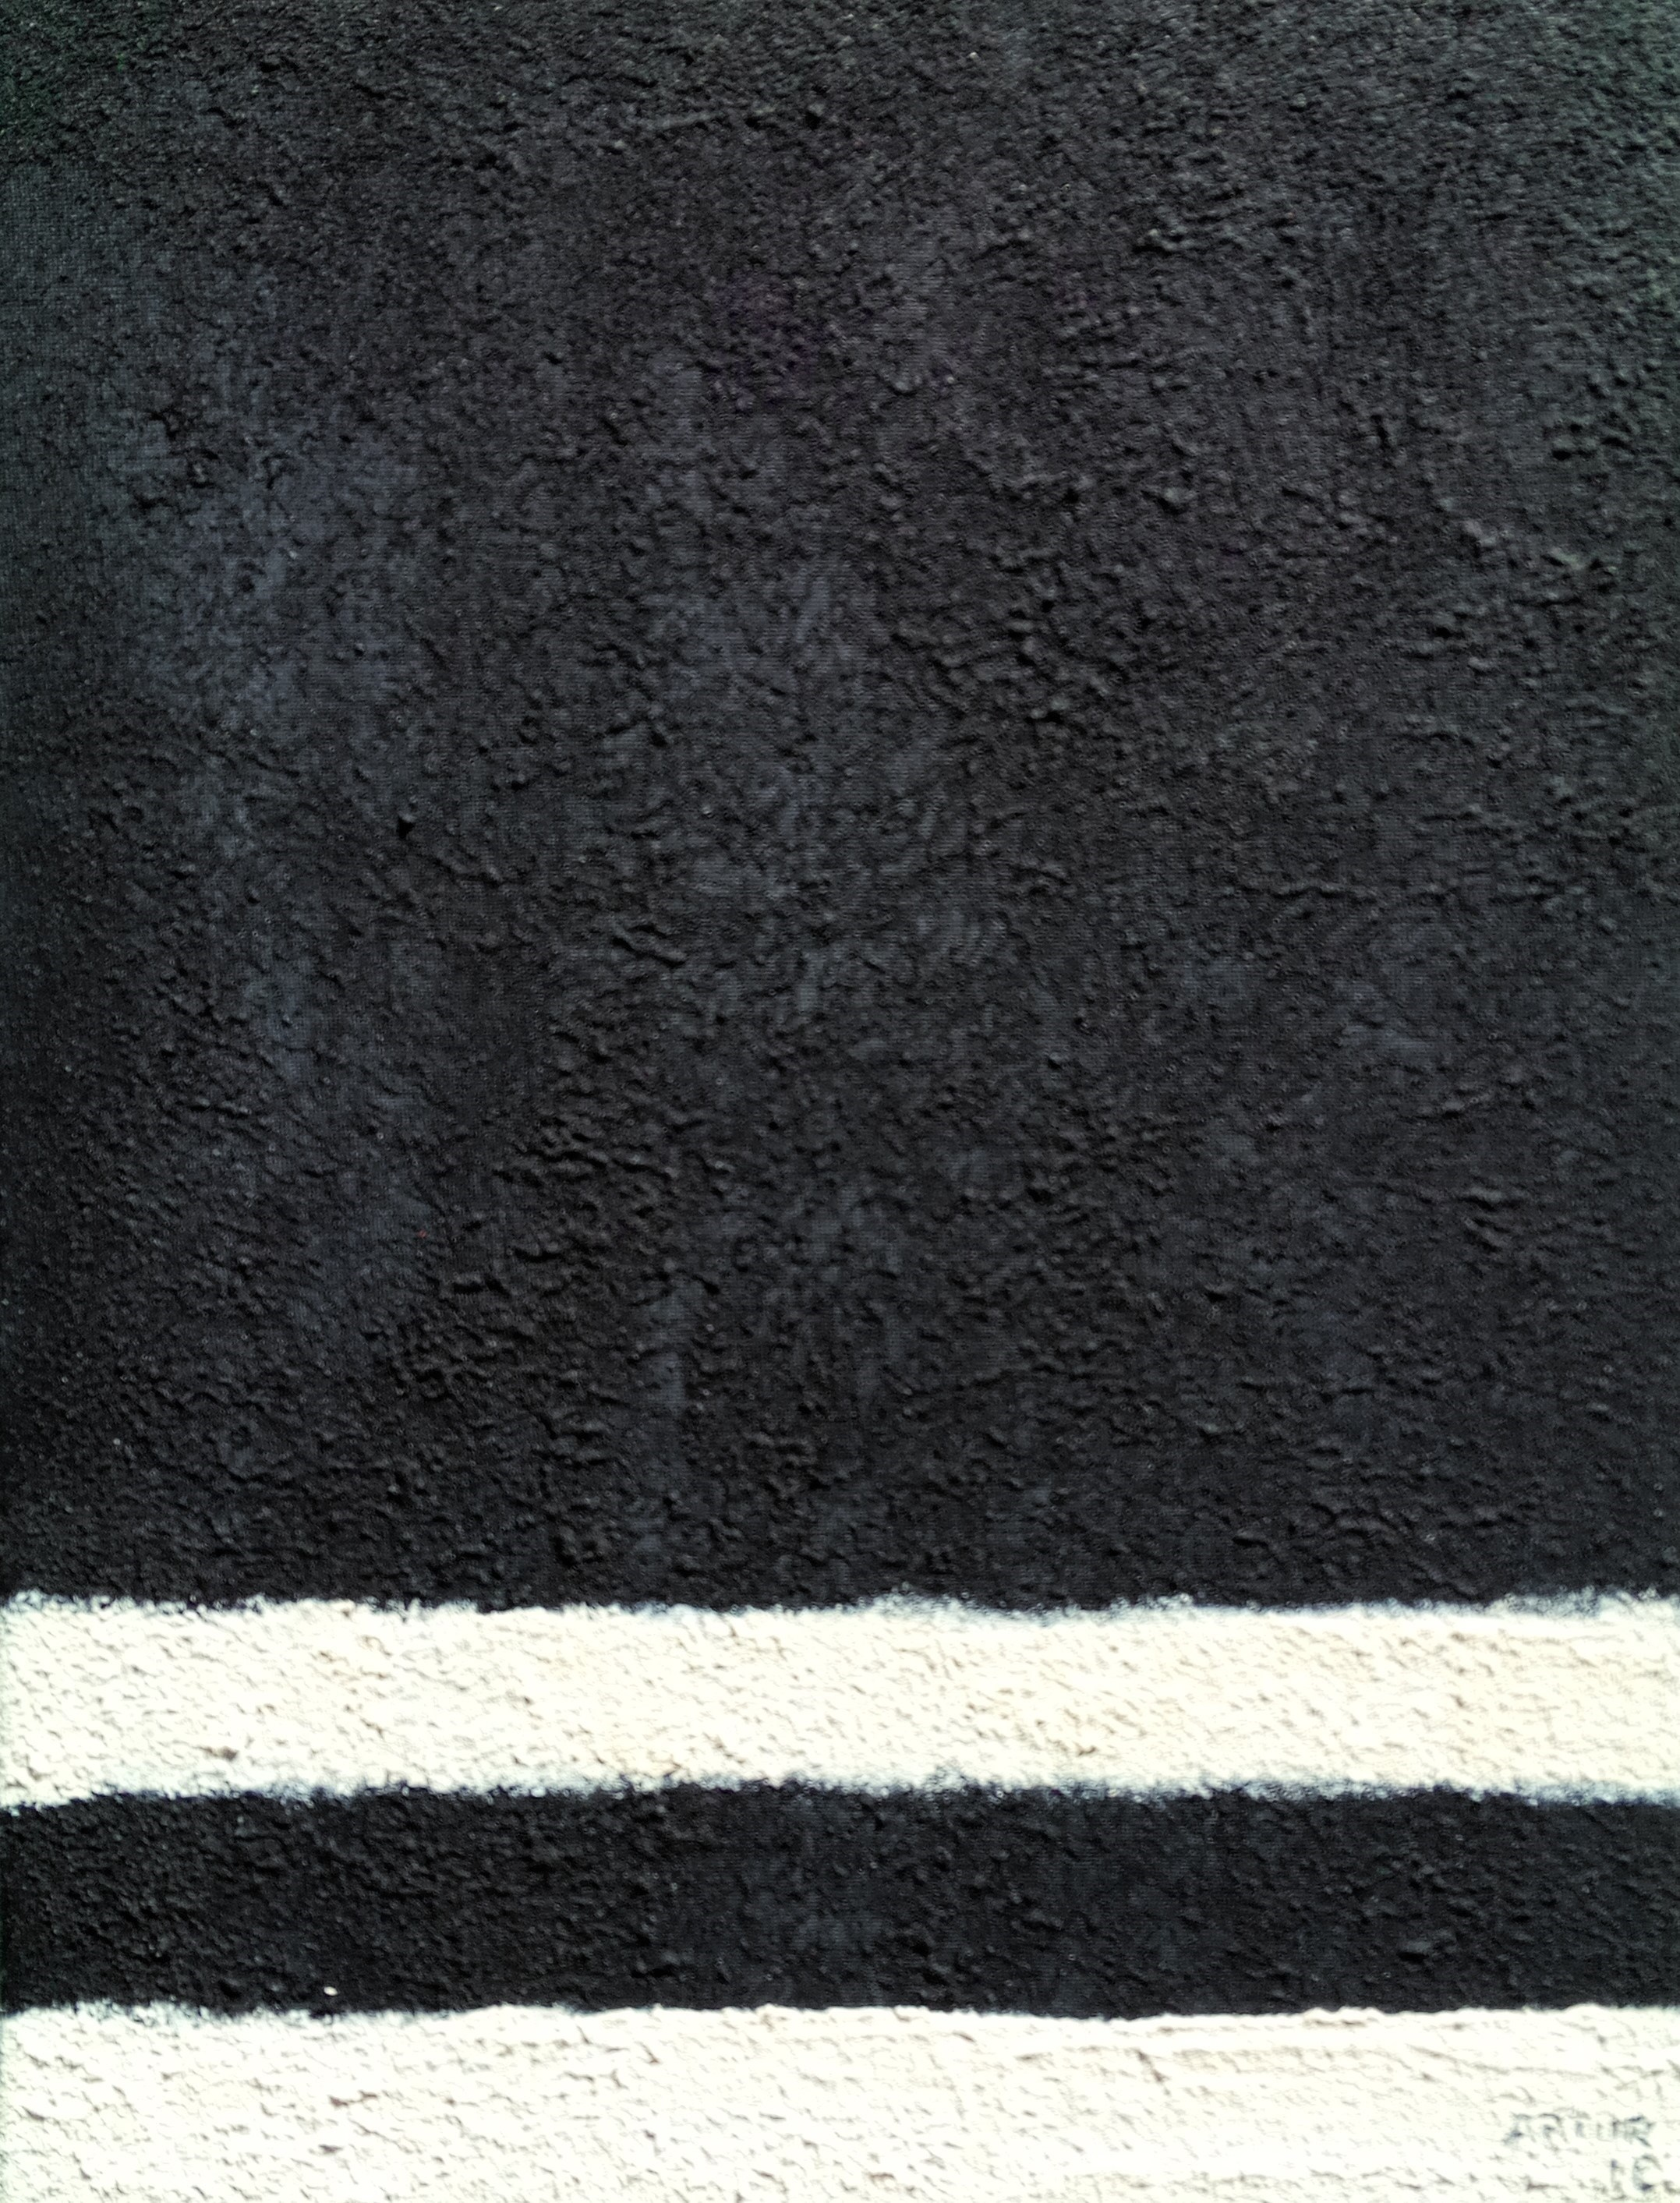 The road, Pintura Acrílico Abstrato original por Artur Efigénio